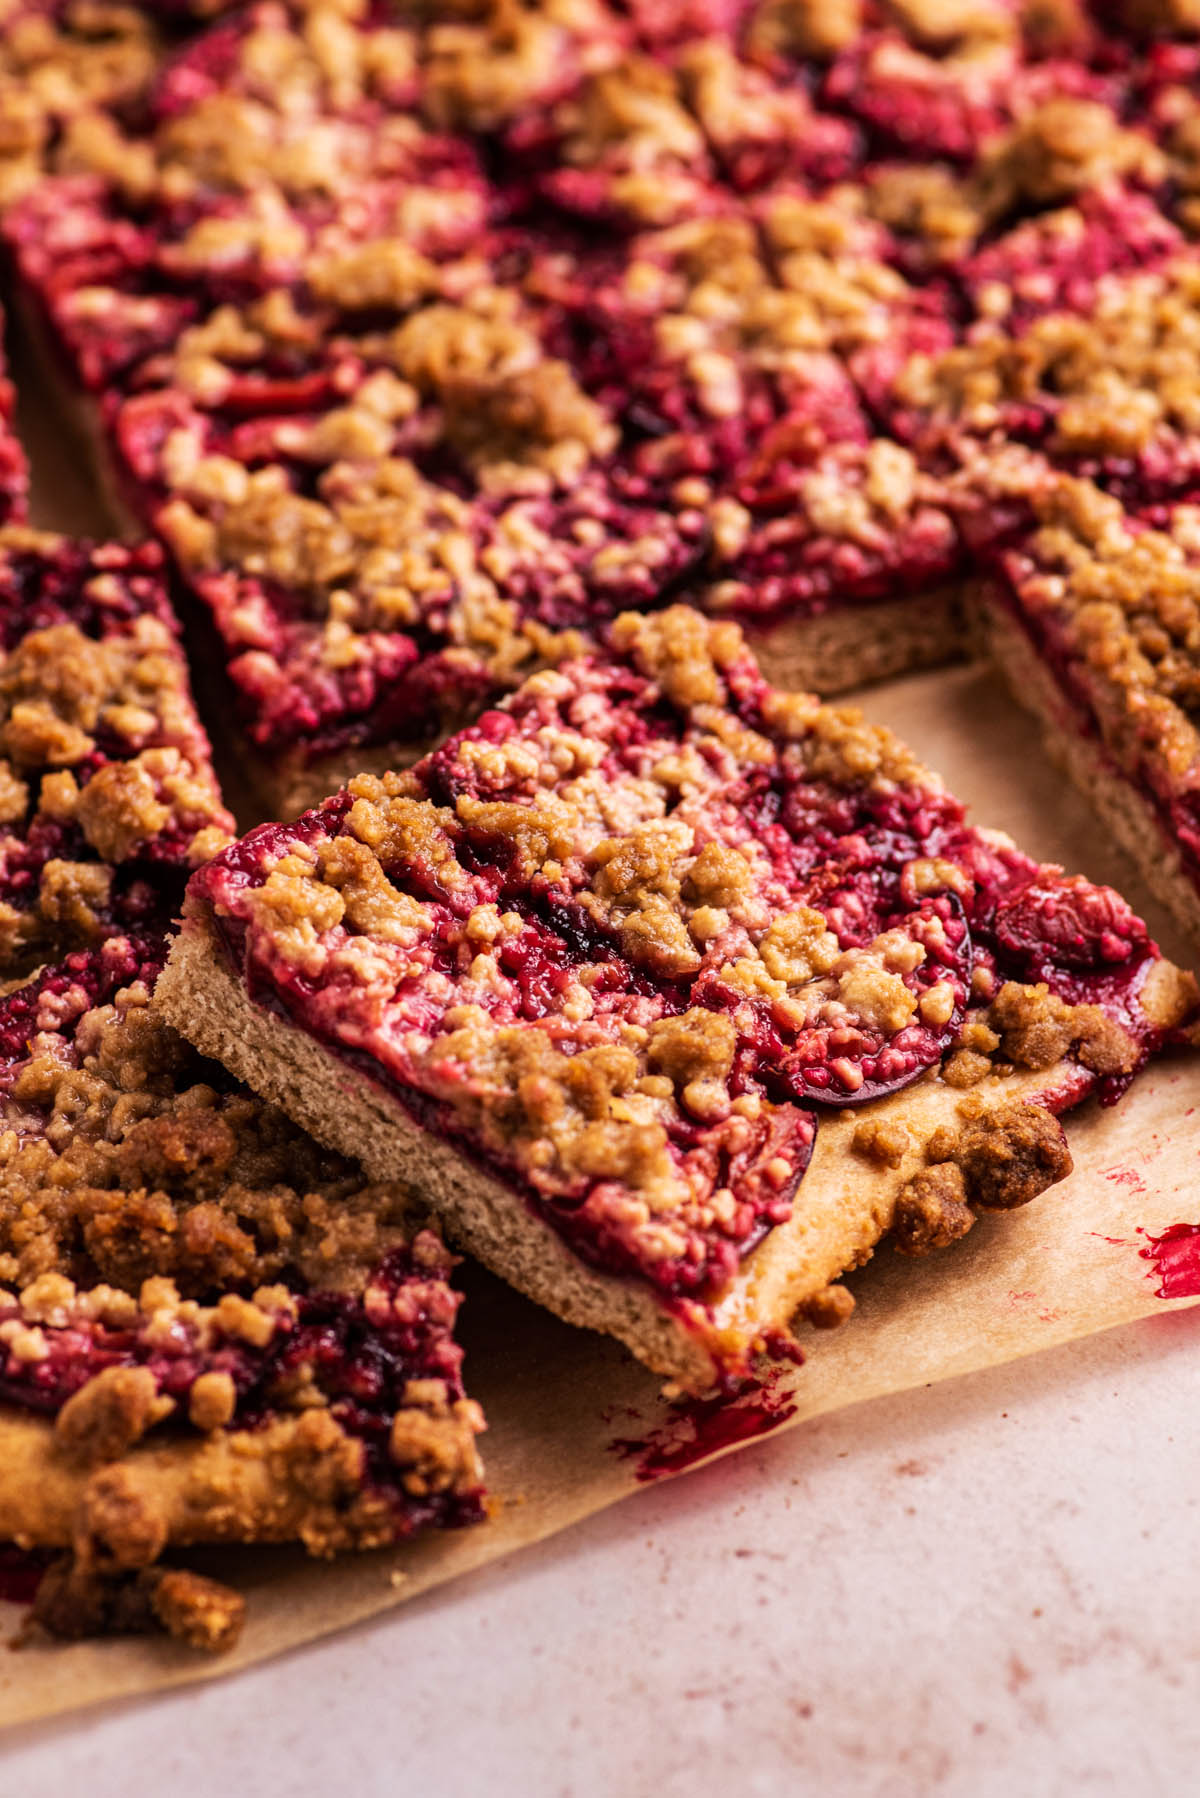 Squares of plum cake, with one propped up on the others.